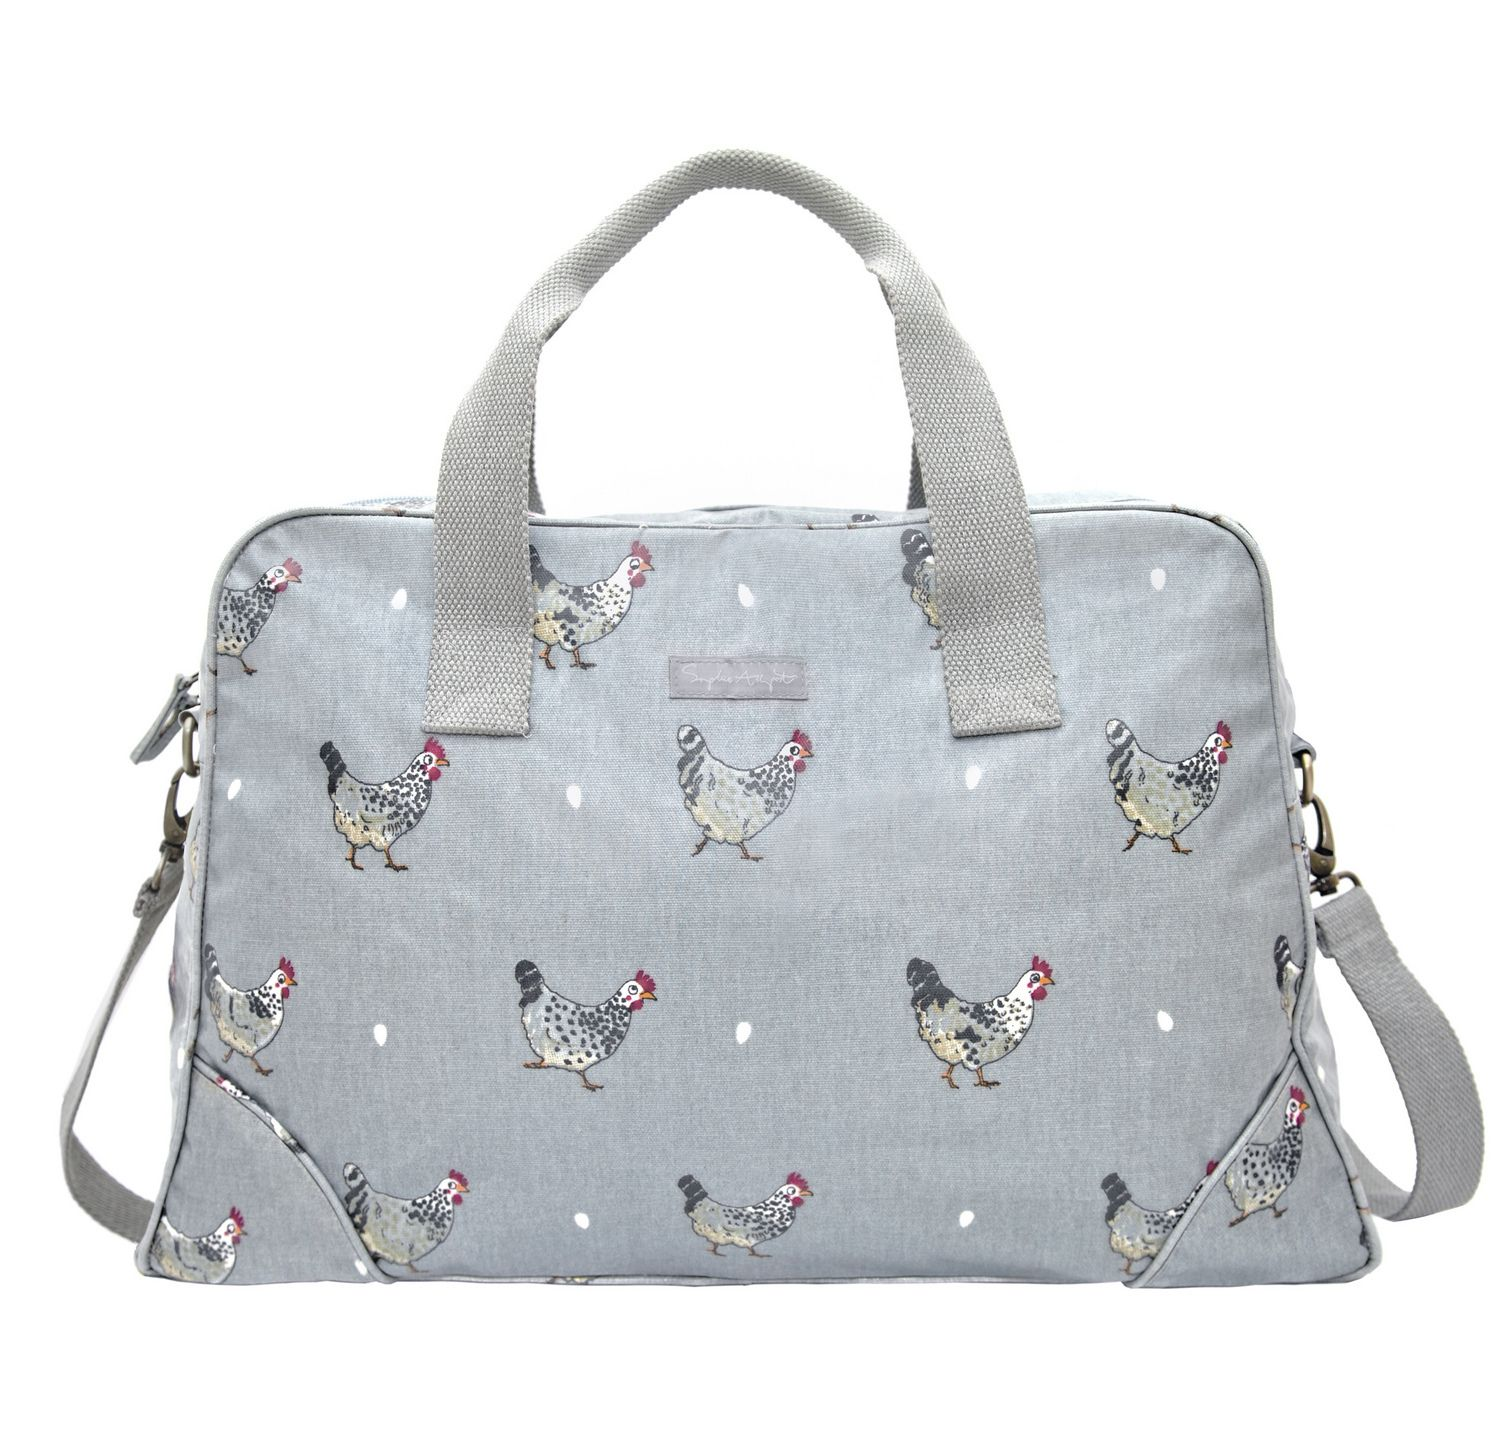 Kitchen Garden Hens A Wonderful Oilcloth Bag Featuring Some Quirky Speckled Maran Hens